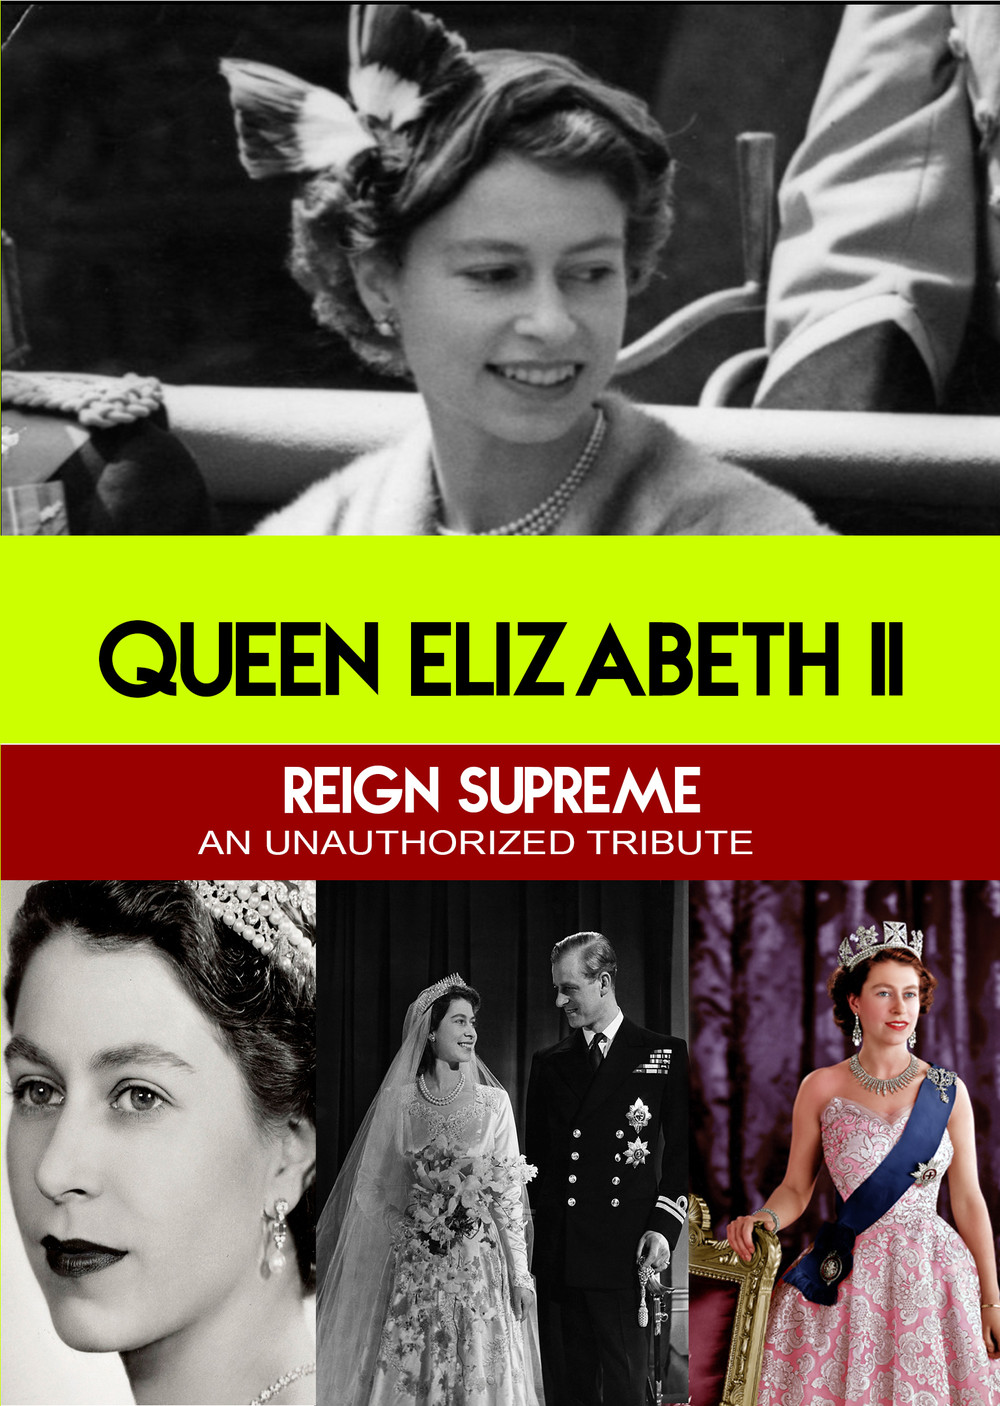 L7804 - Queen Elizabeth II Reign Supreme - An Unauthorized Story